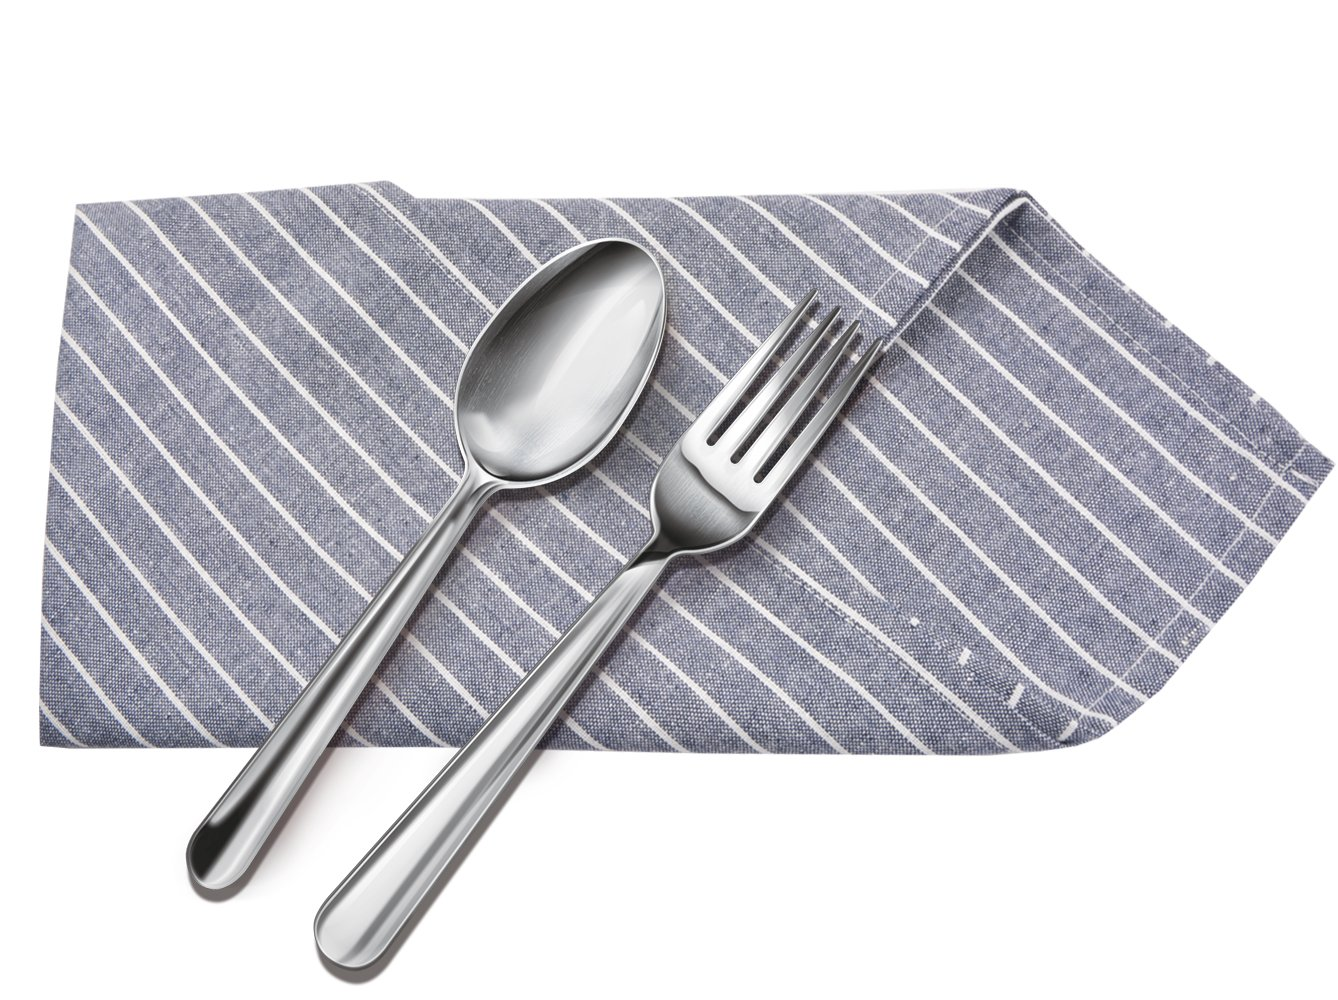 Sinland Linen Napkins Oversized Dinner Napkins Tailored with Mitered Corners and a Generous Hem 20Inch x 20Inch 6 Packs (Grey Blue) by Sinland (Image #7)